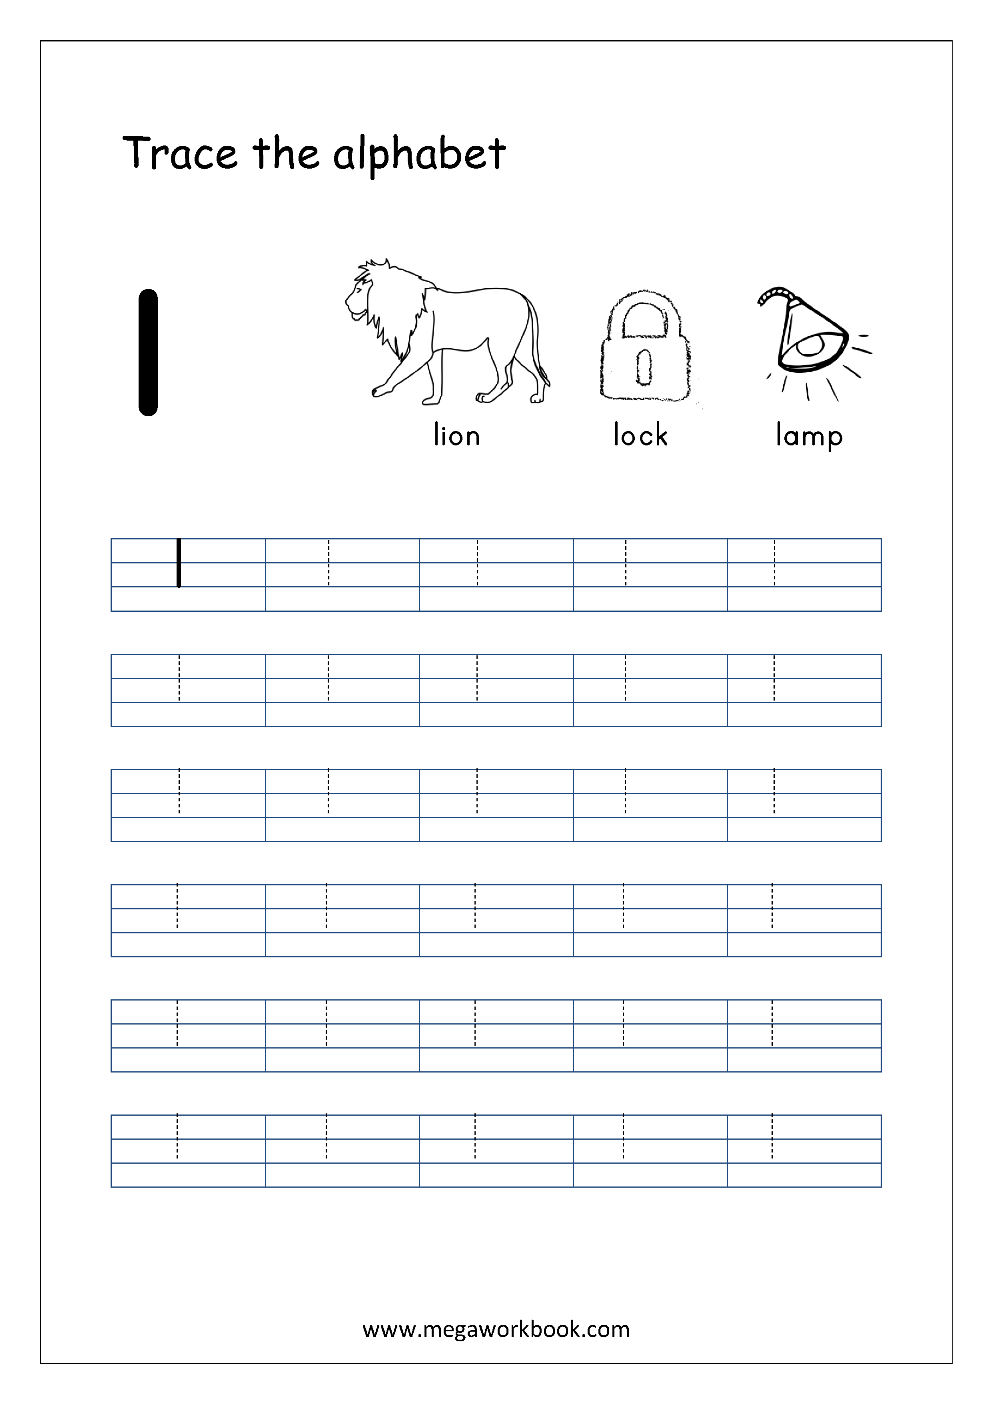 alphabet tracing small letters alphabet tracing worksheets alphabet tracing sheets free. Black Bedroom Furniture Sets. Home Design Ideas